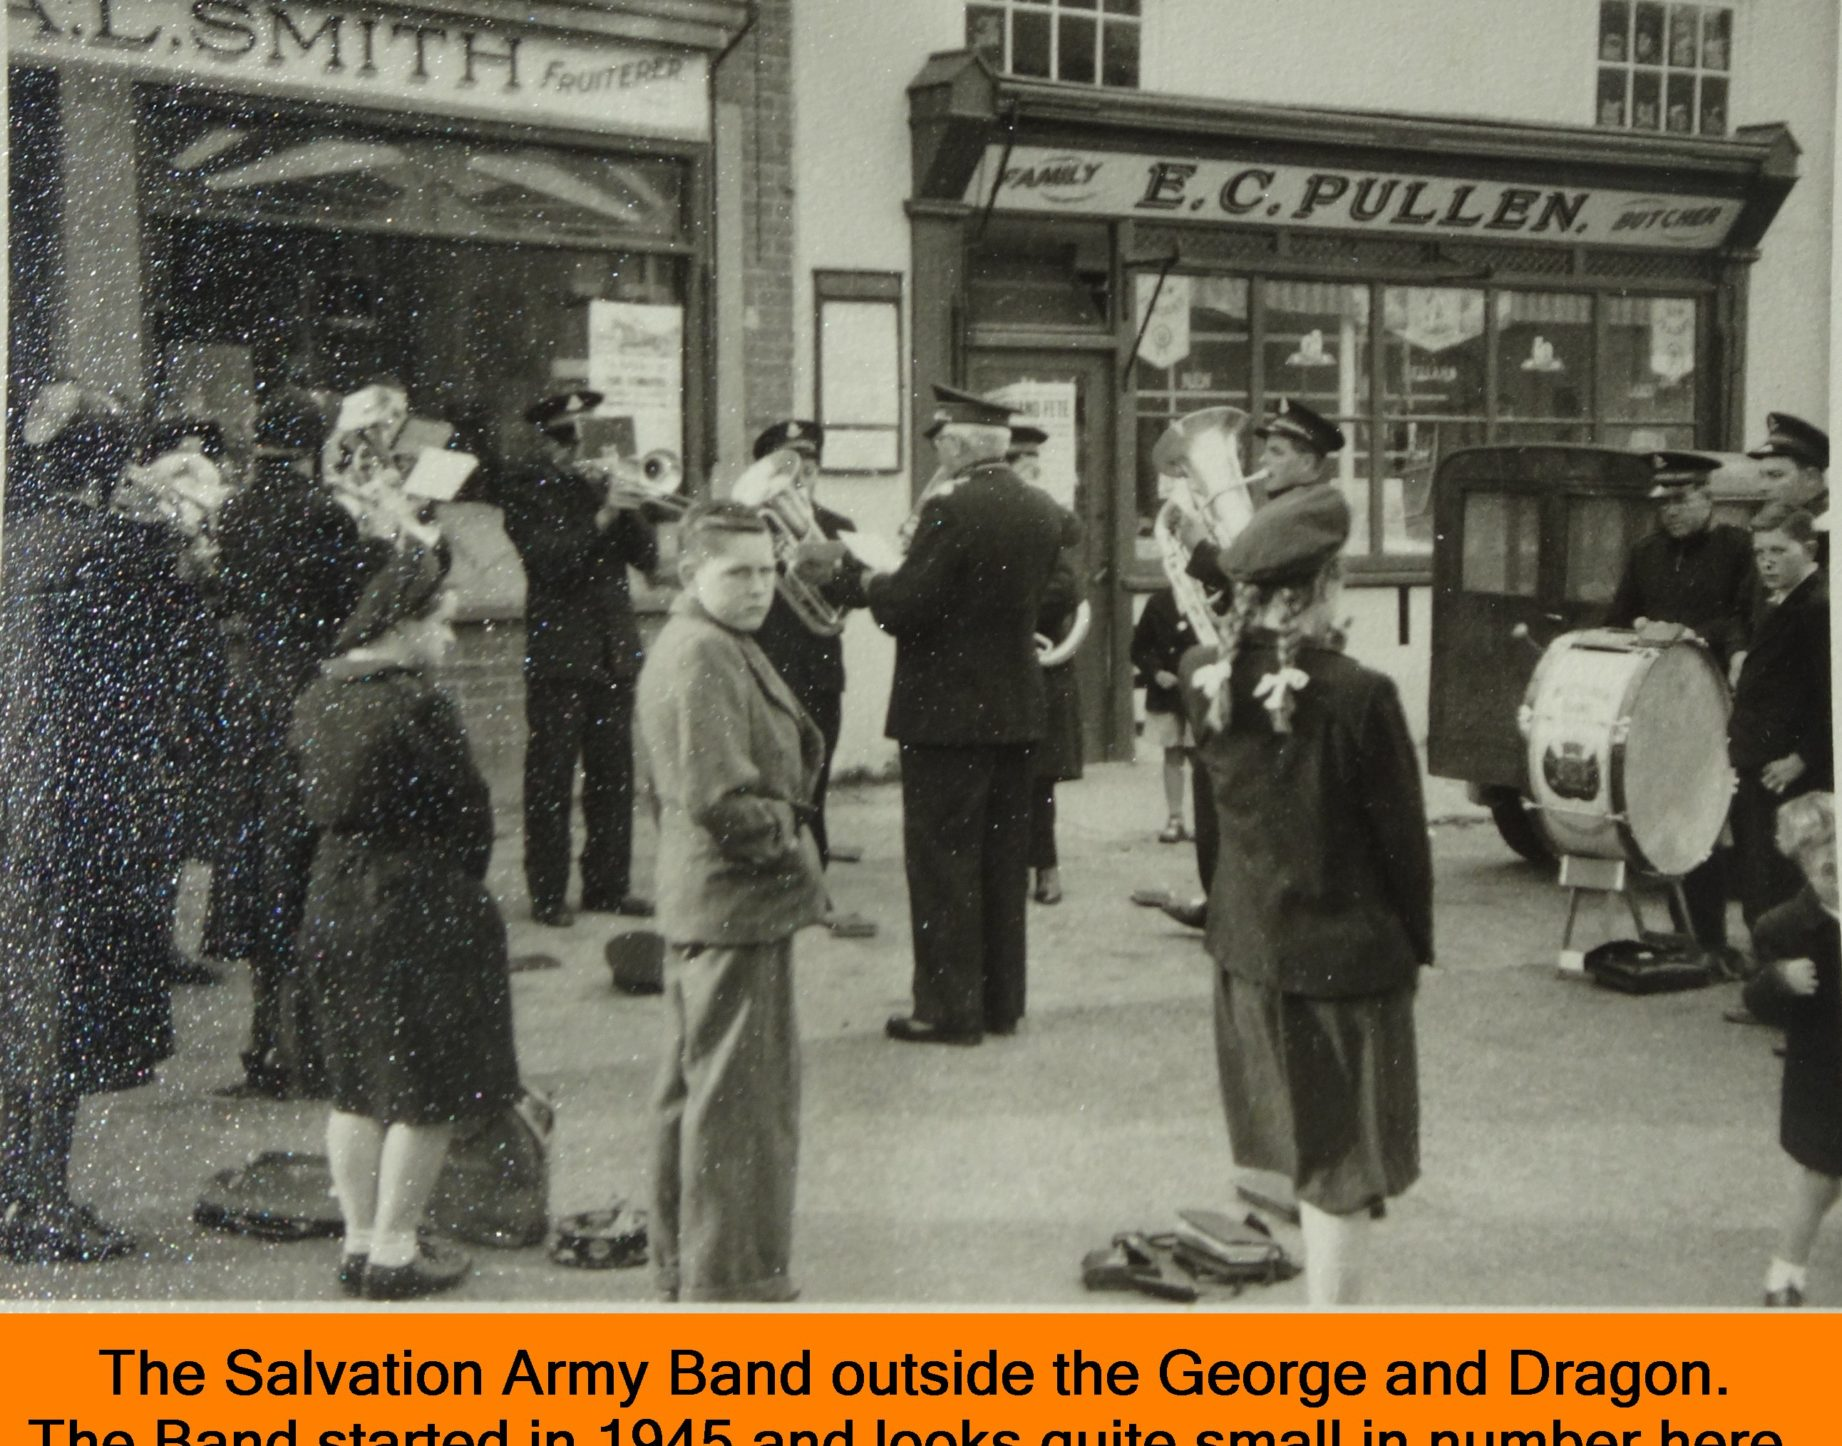 WESTBOURNE HISTORY PHOTO, SALVATION ARMY, BAND, SQUARE, GEORGE AND DRAGON, LAURIE MOSS